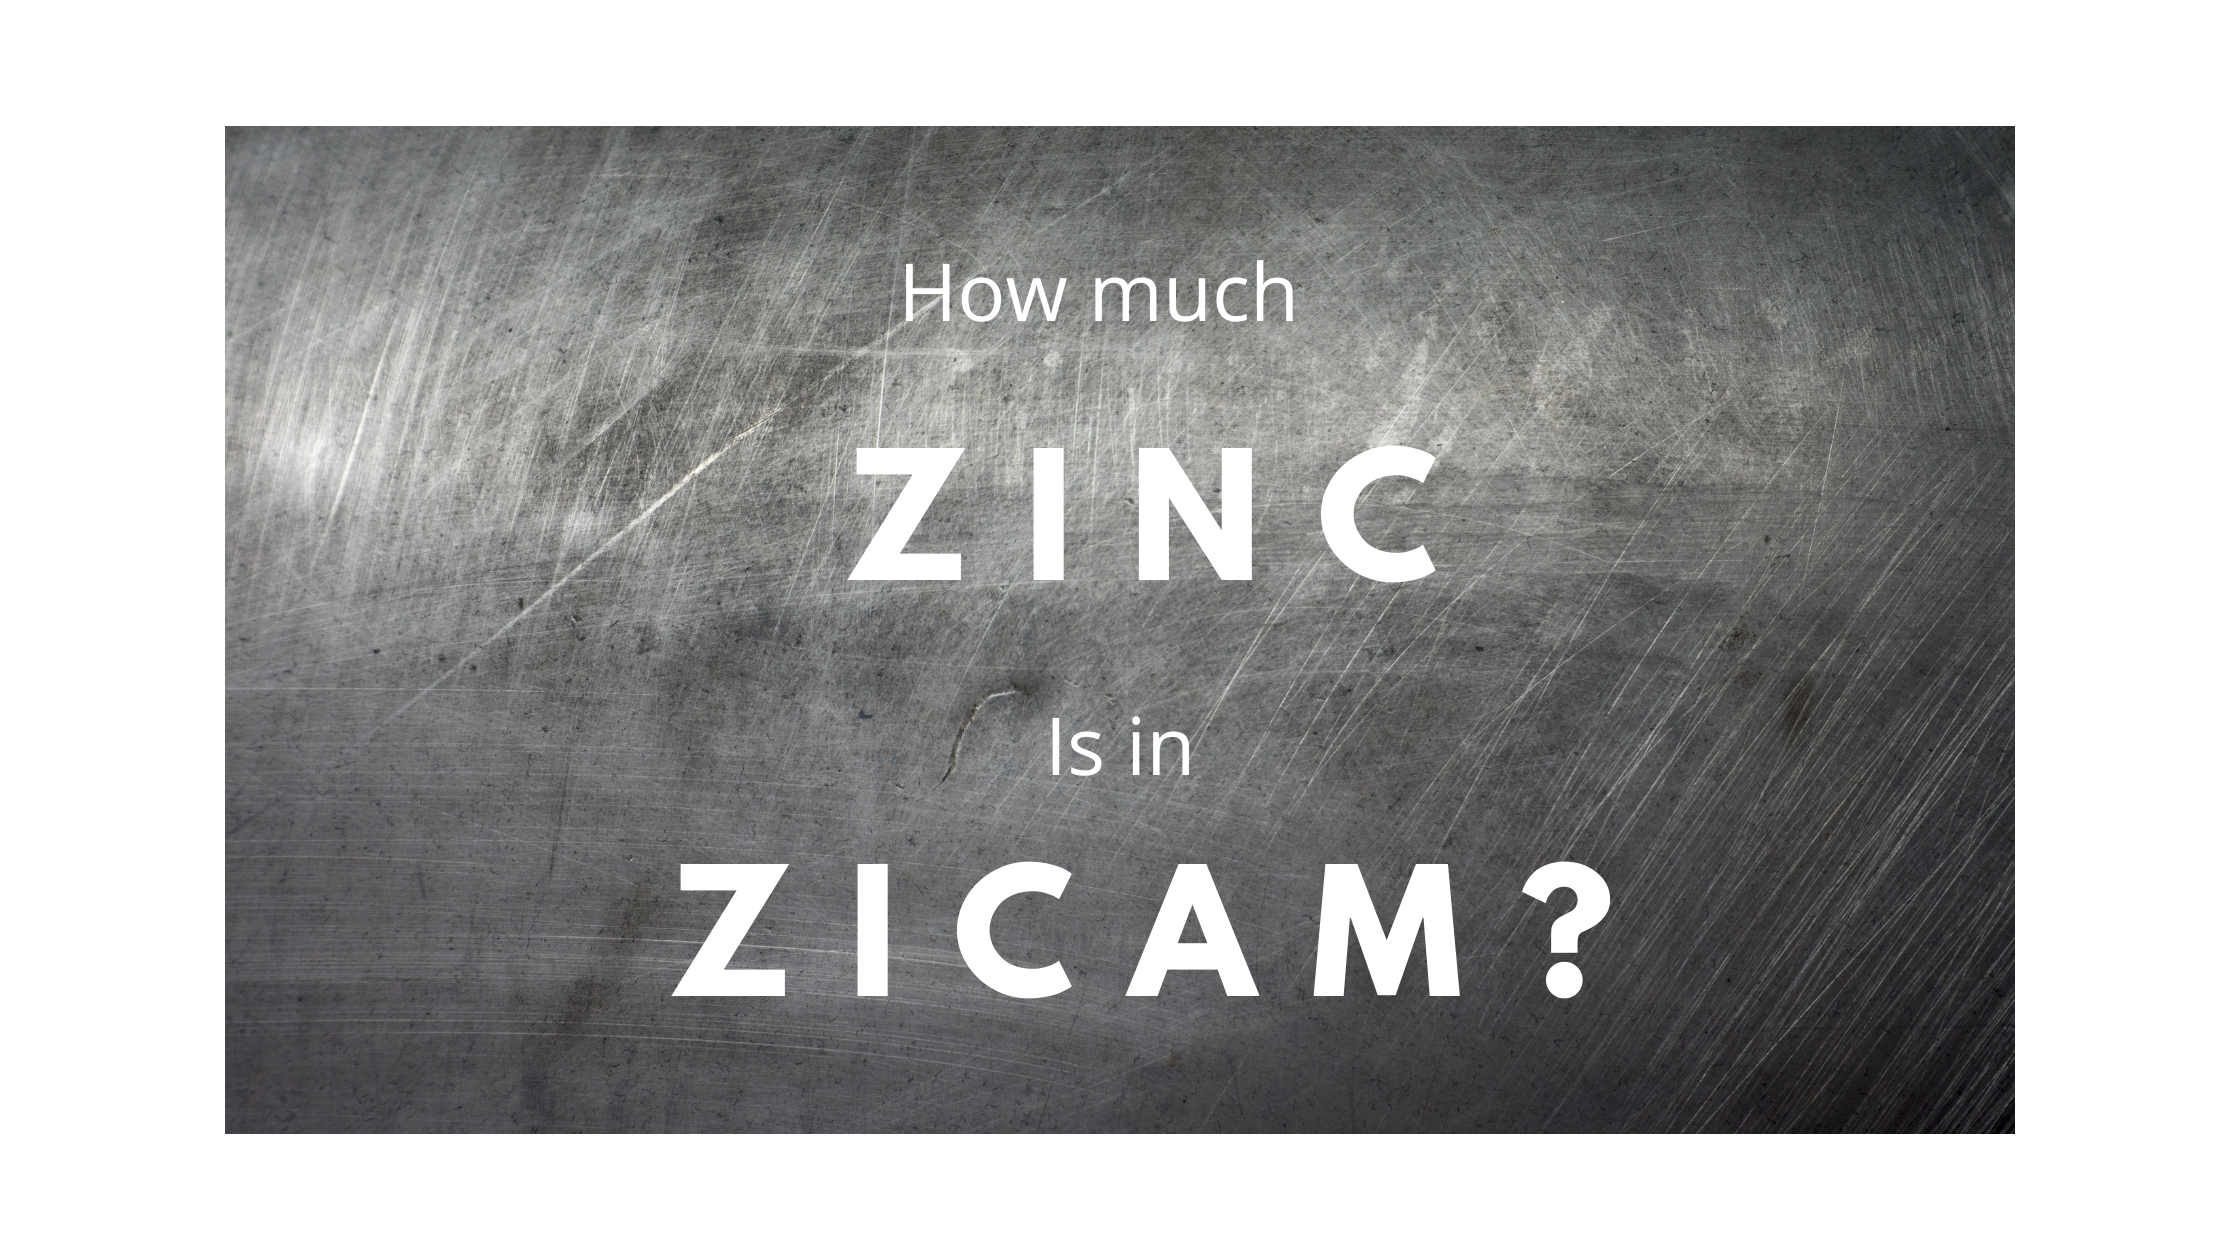 How much zinc is in zicam